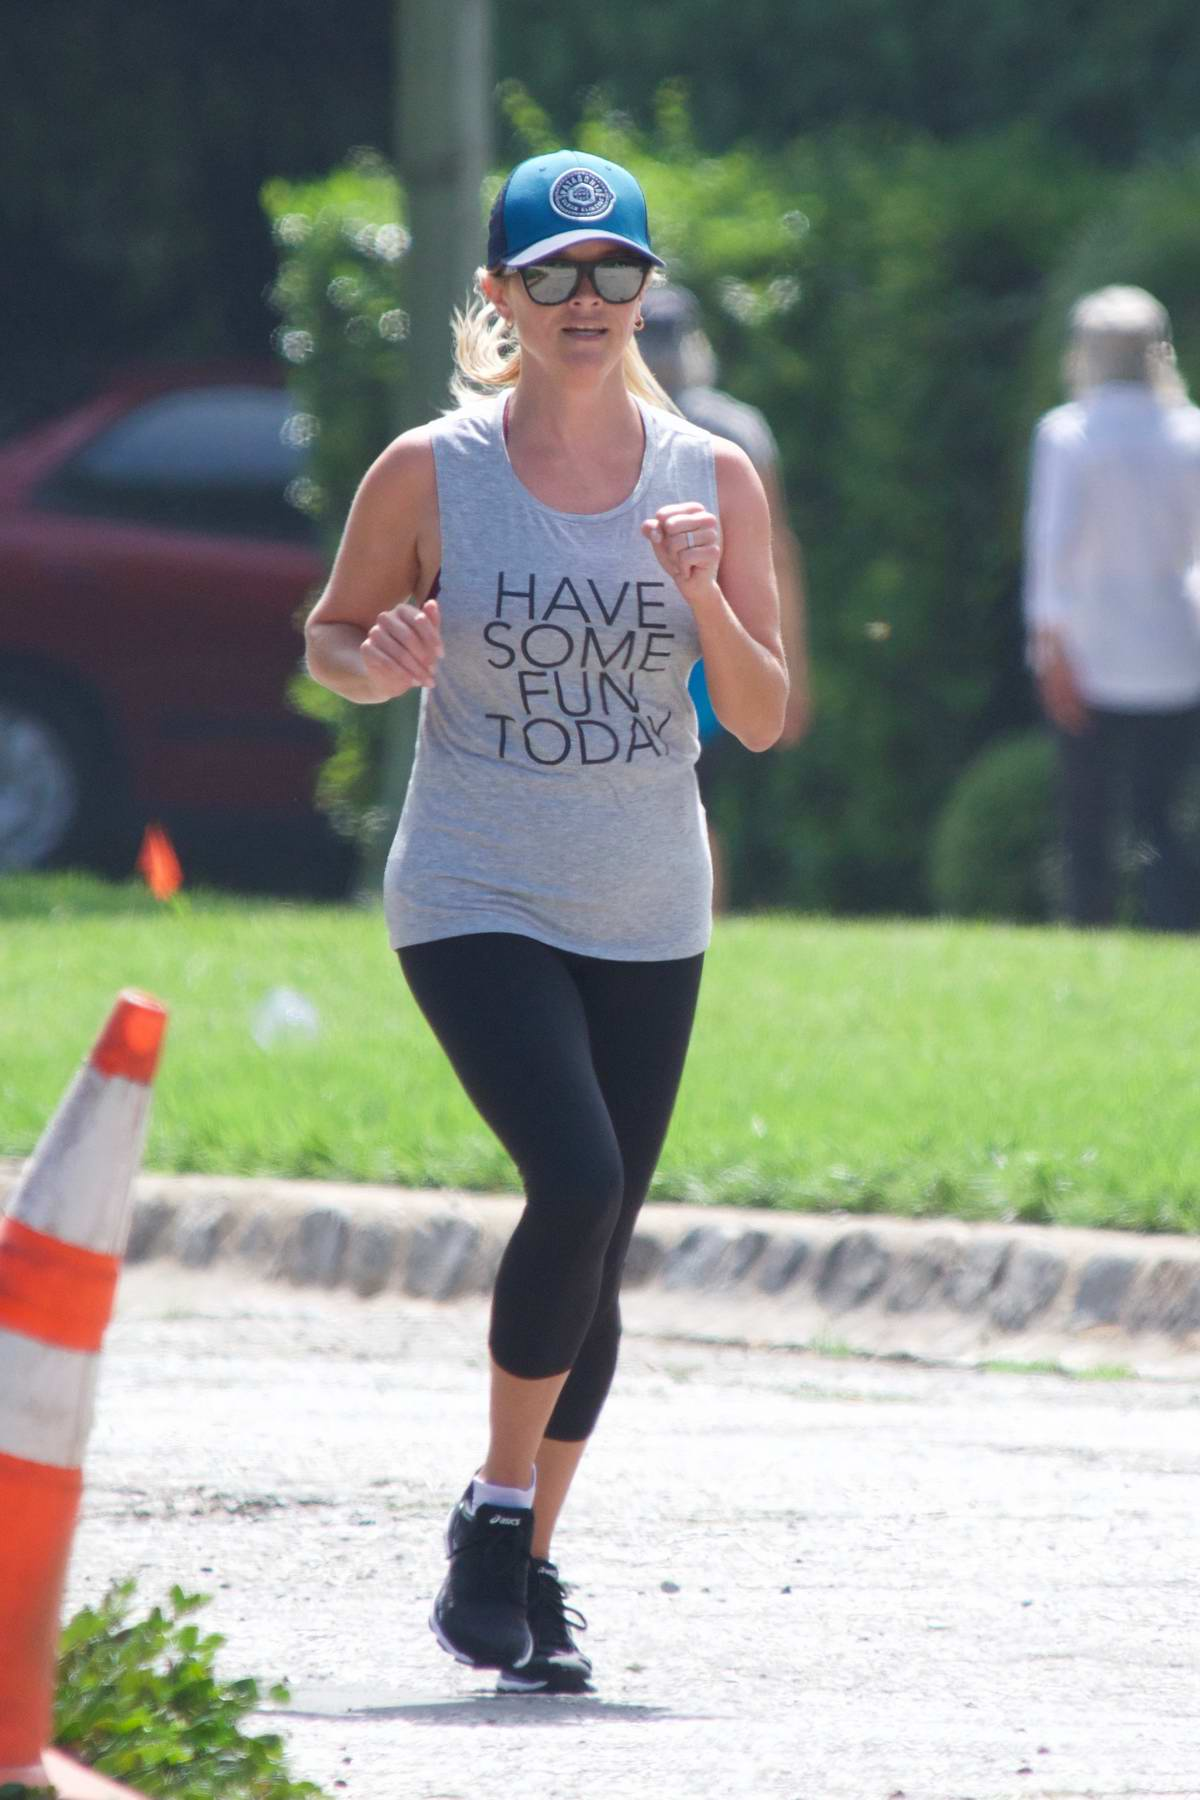 Reese Witherspoon jogging around her neighborhood in Brentwood, Los Angeles